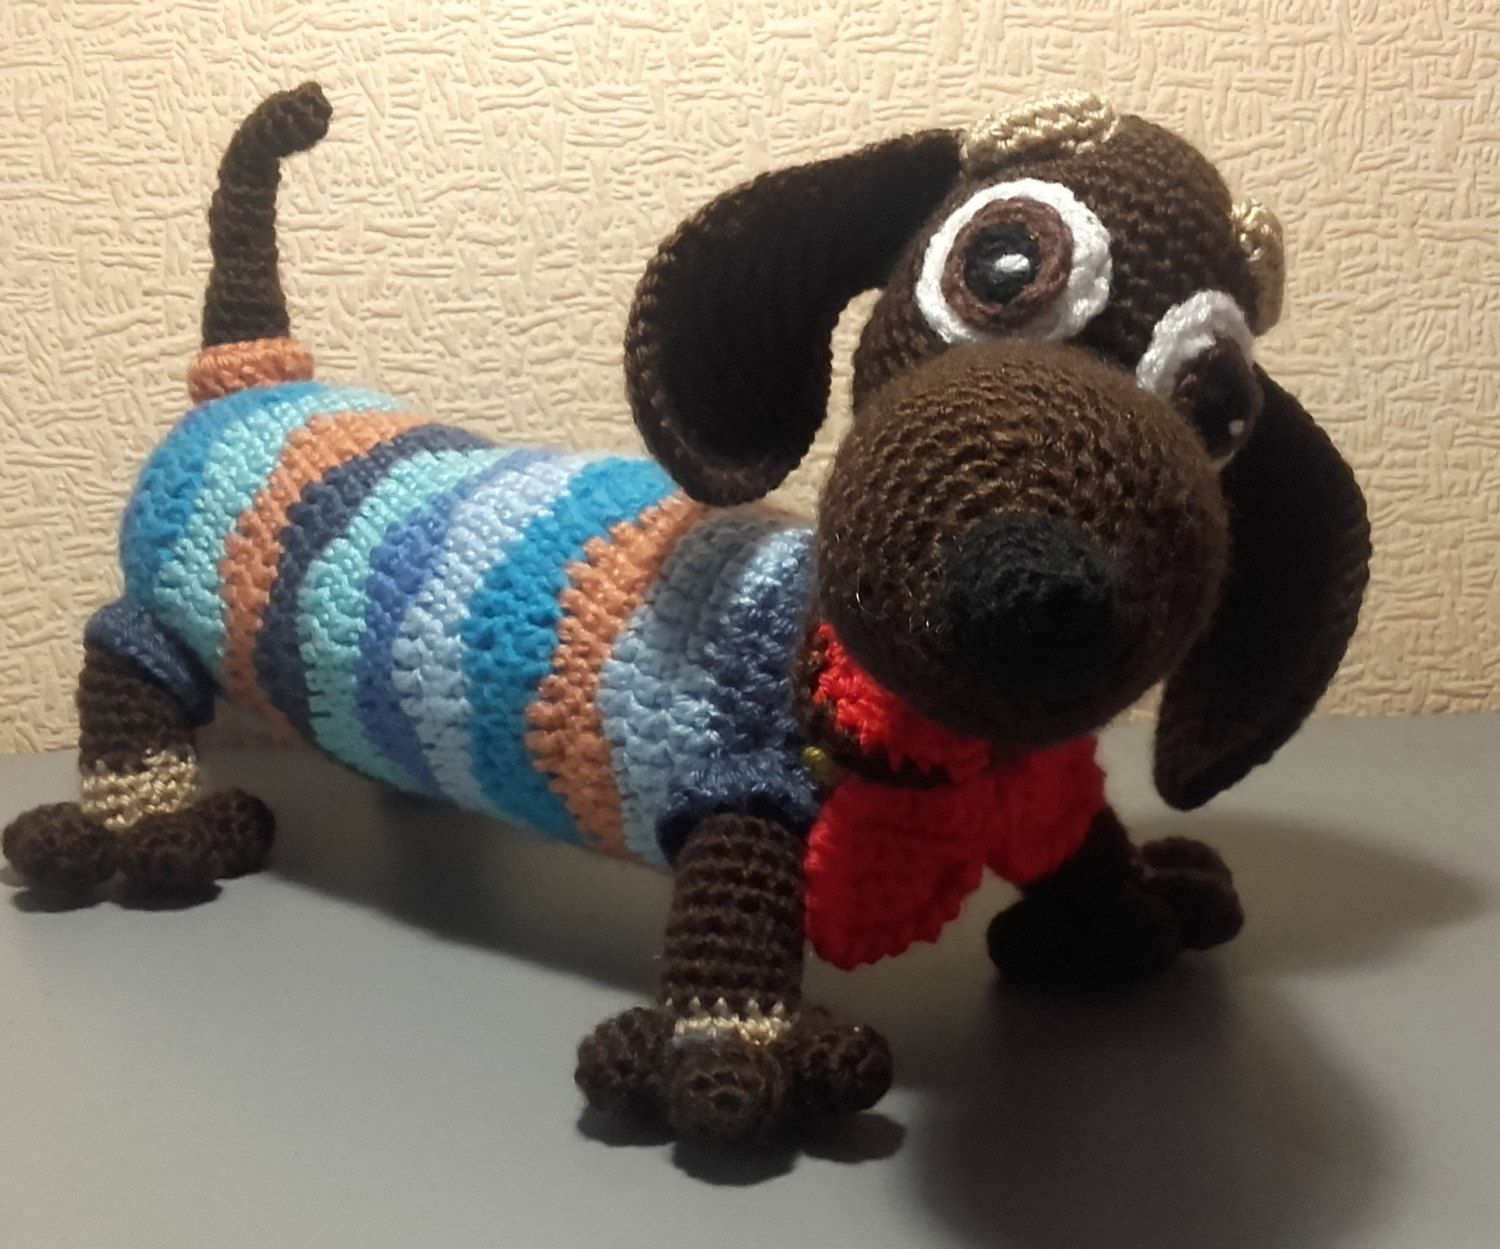 Amigurumi Wiener Dog Pattern : Crochet dachshund dog toy amigurumi handmade cute knitted puppy